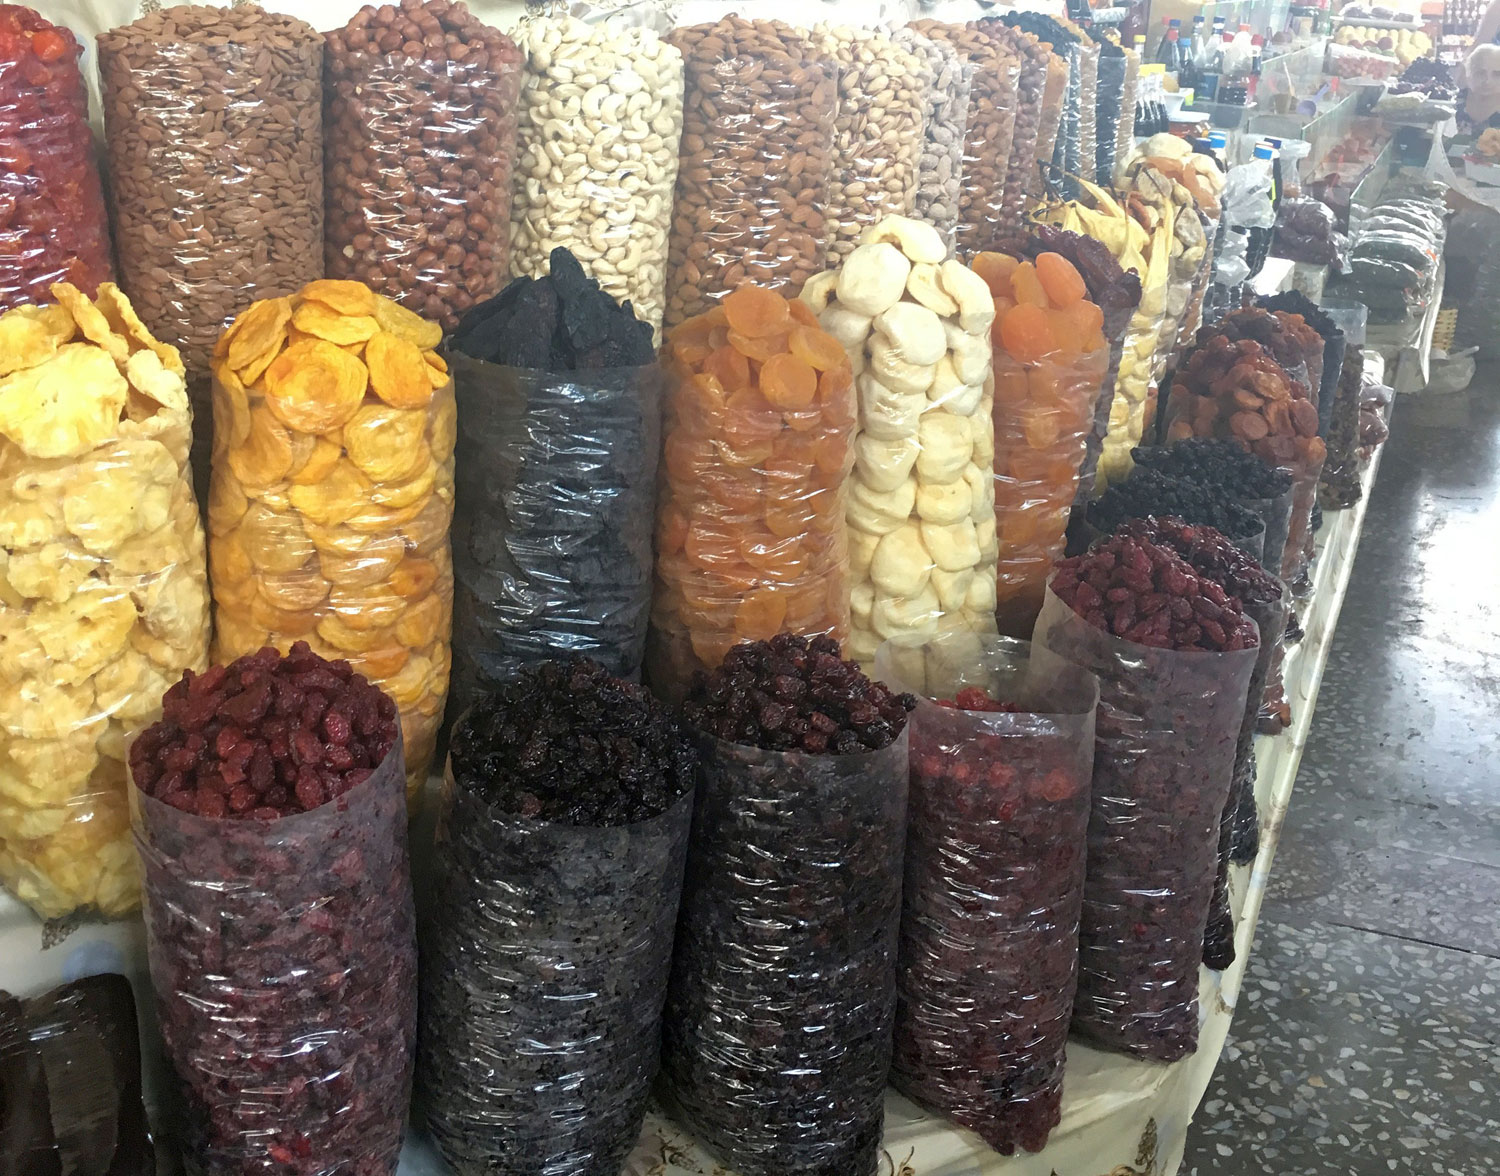 Bags of fruit in Armenian market.